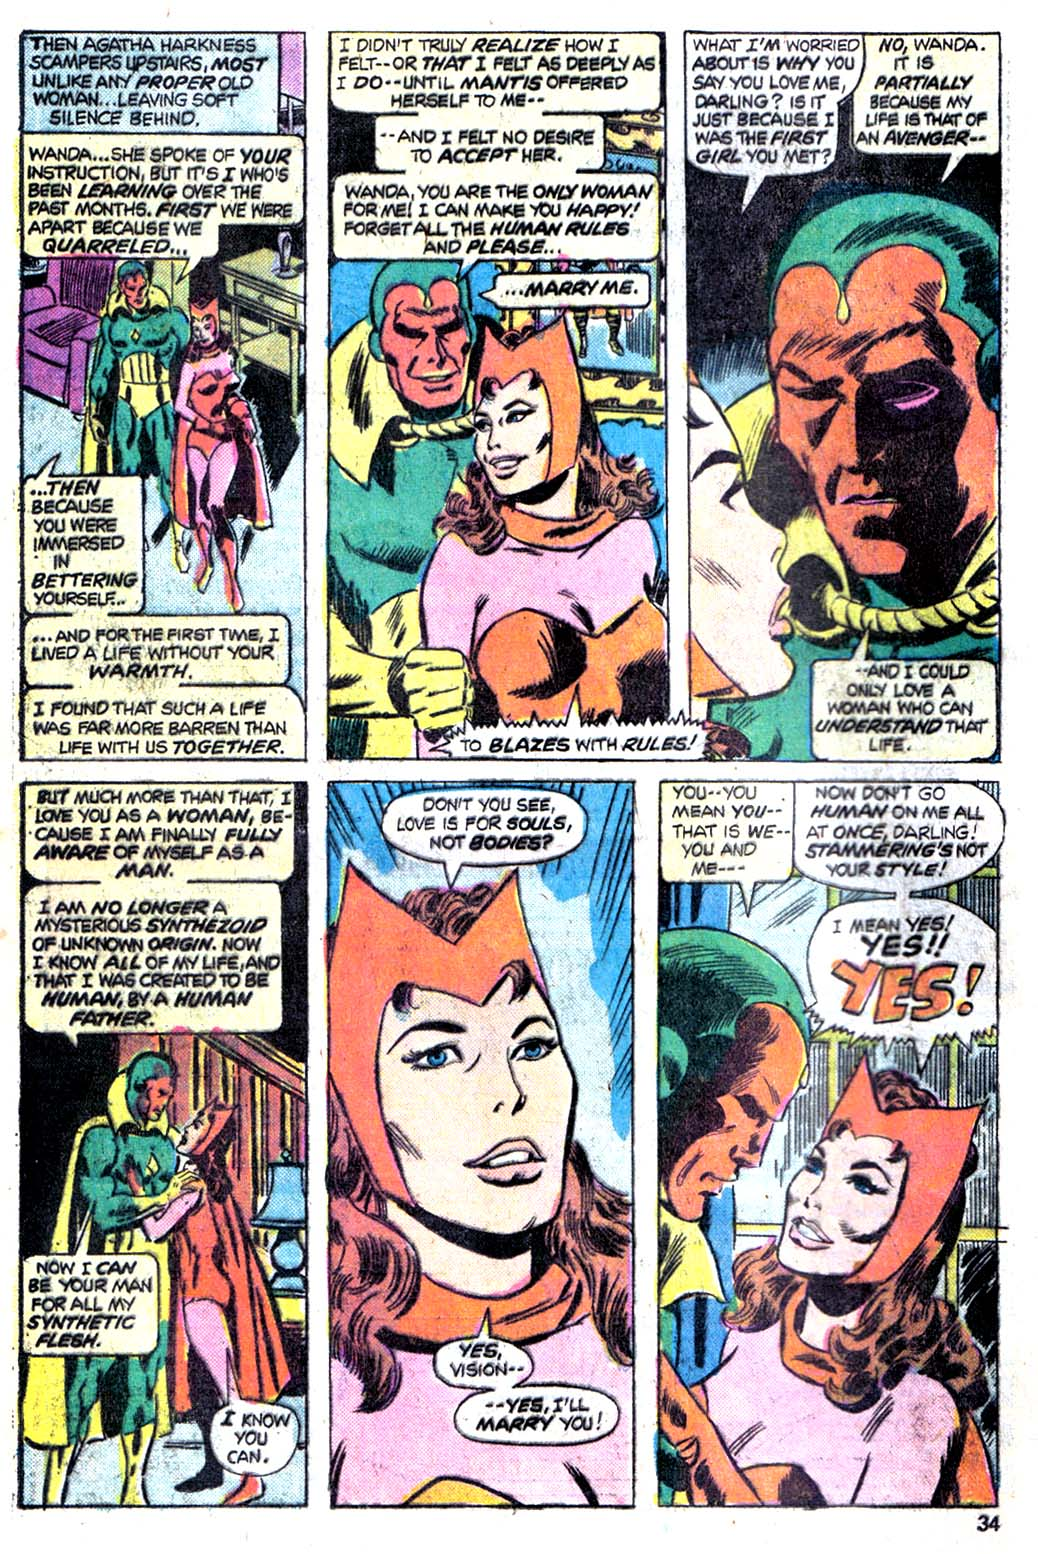 Vision proposes to Scarlet Witch